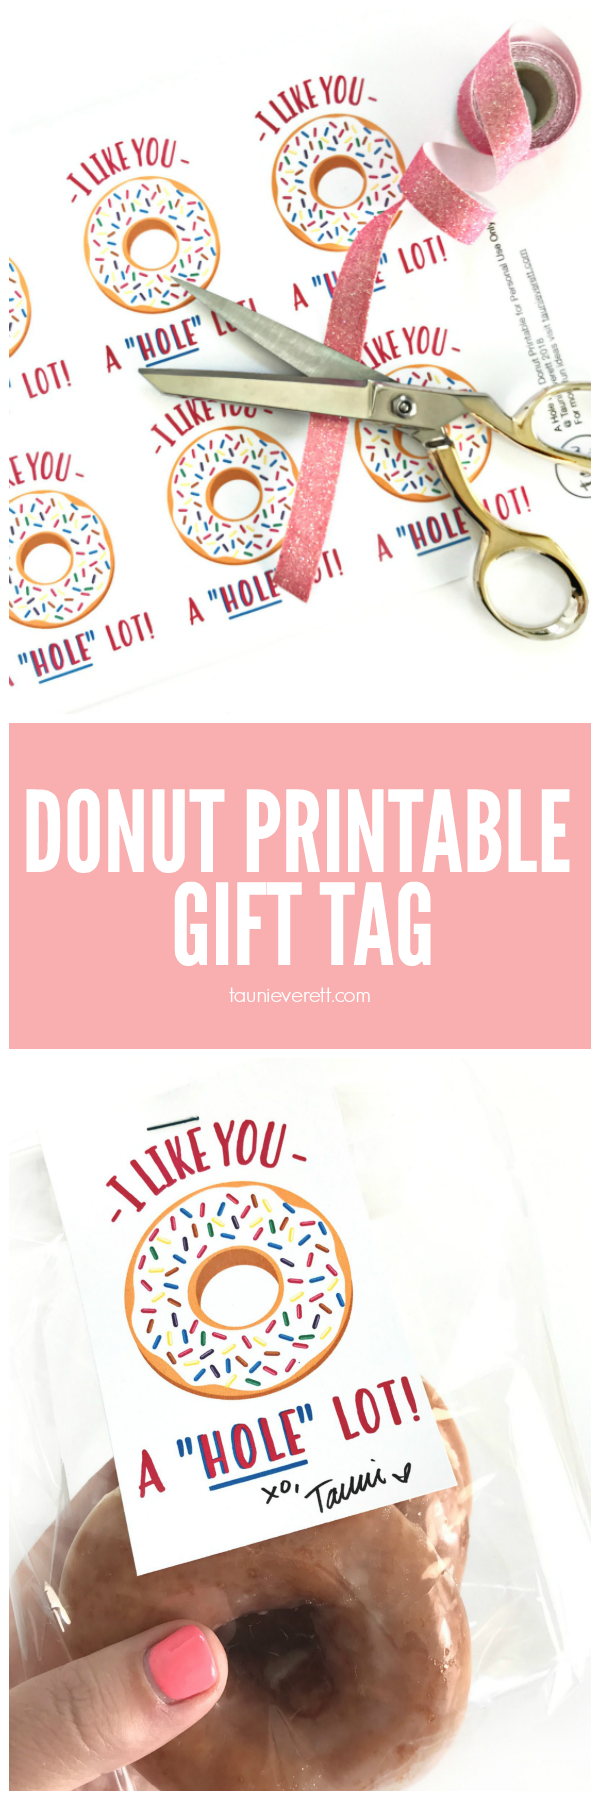 """A Hole Lot"" Donut Printable Gift Tag for Valentines Day by Tauni Everett"